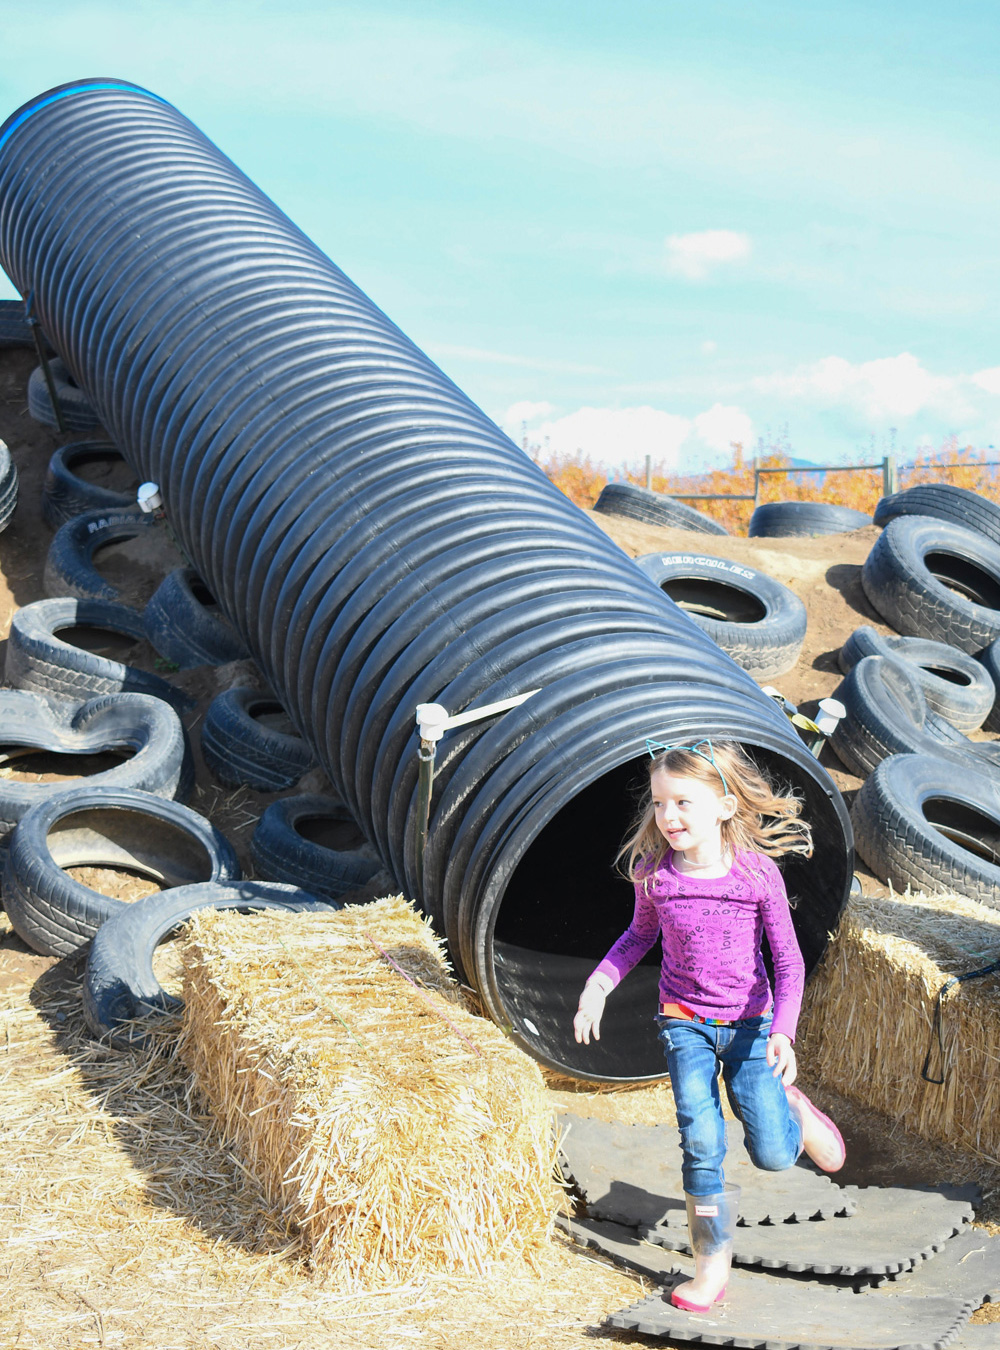 Green Bluff Becks Harvest House Tire Slide - Things To Do at Your Local Pumpkin Farm